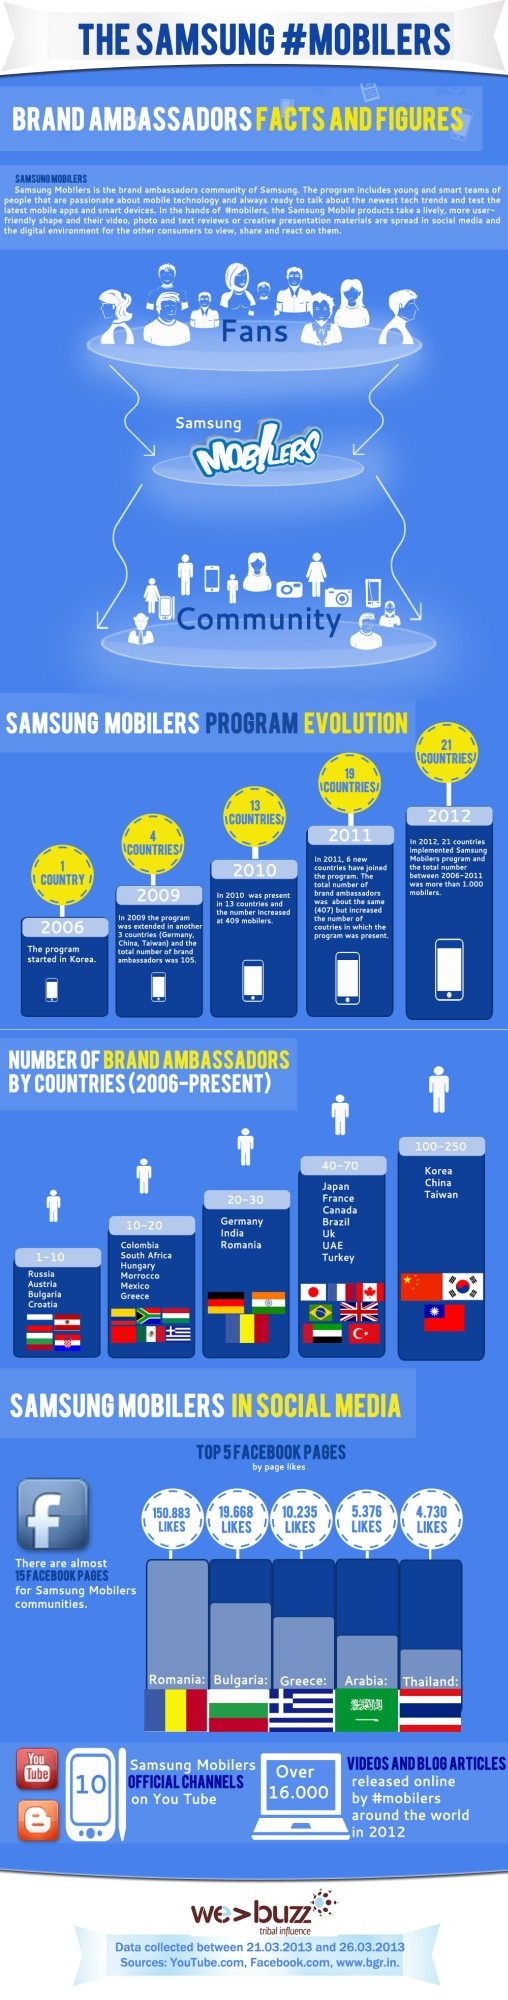 Samsung Mobilers Infographic